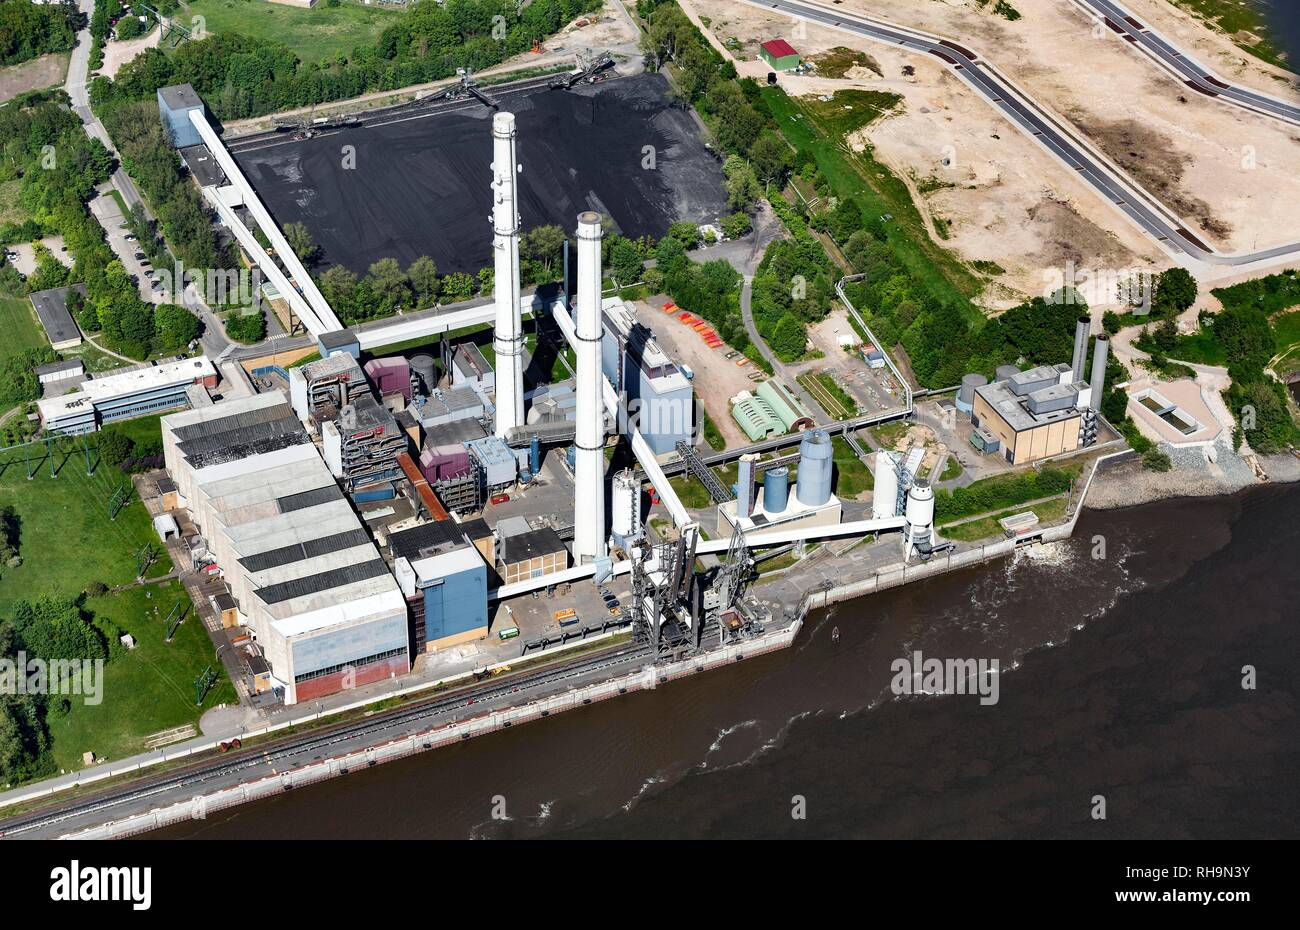 Aerial view, Wedel coal-fired power plant, Schleswig-Holstein, Germany - Stock Image